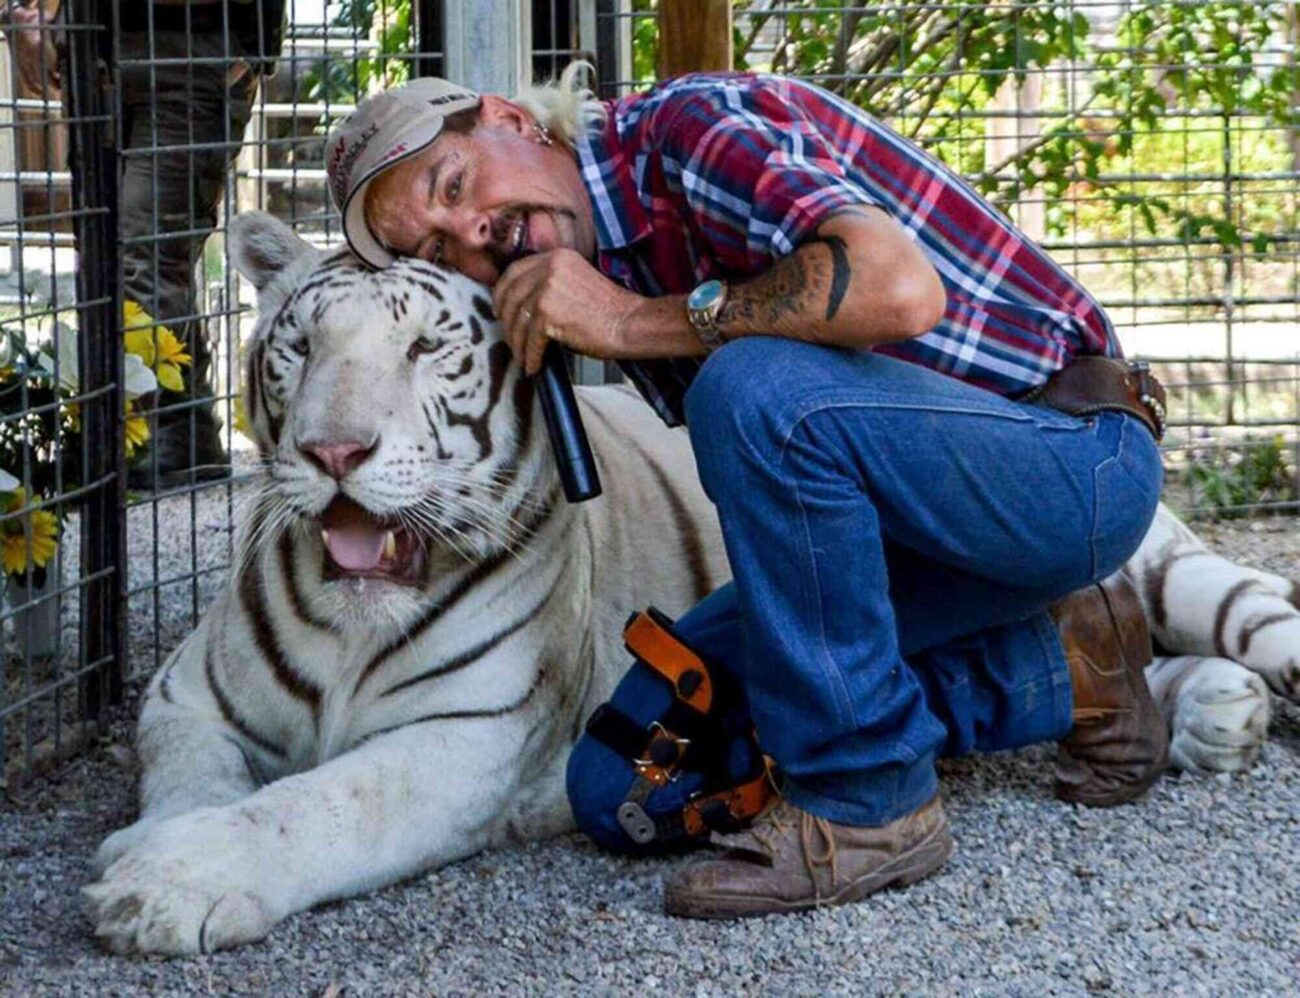 'Tiger King' star Joe Exotic is set to be re-sentenced in the murder-for-hire plot against Carole Baskin. Find out if he can be released.